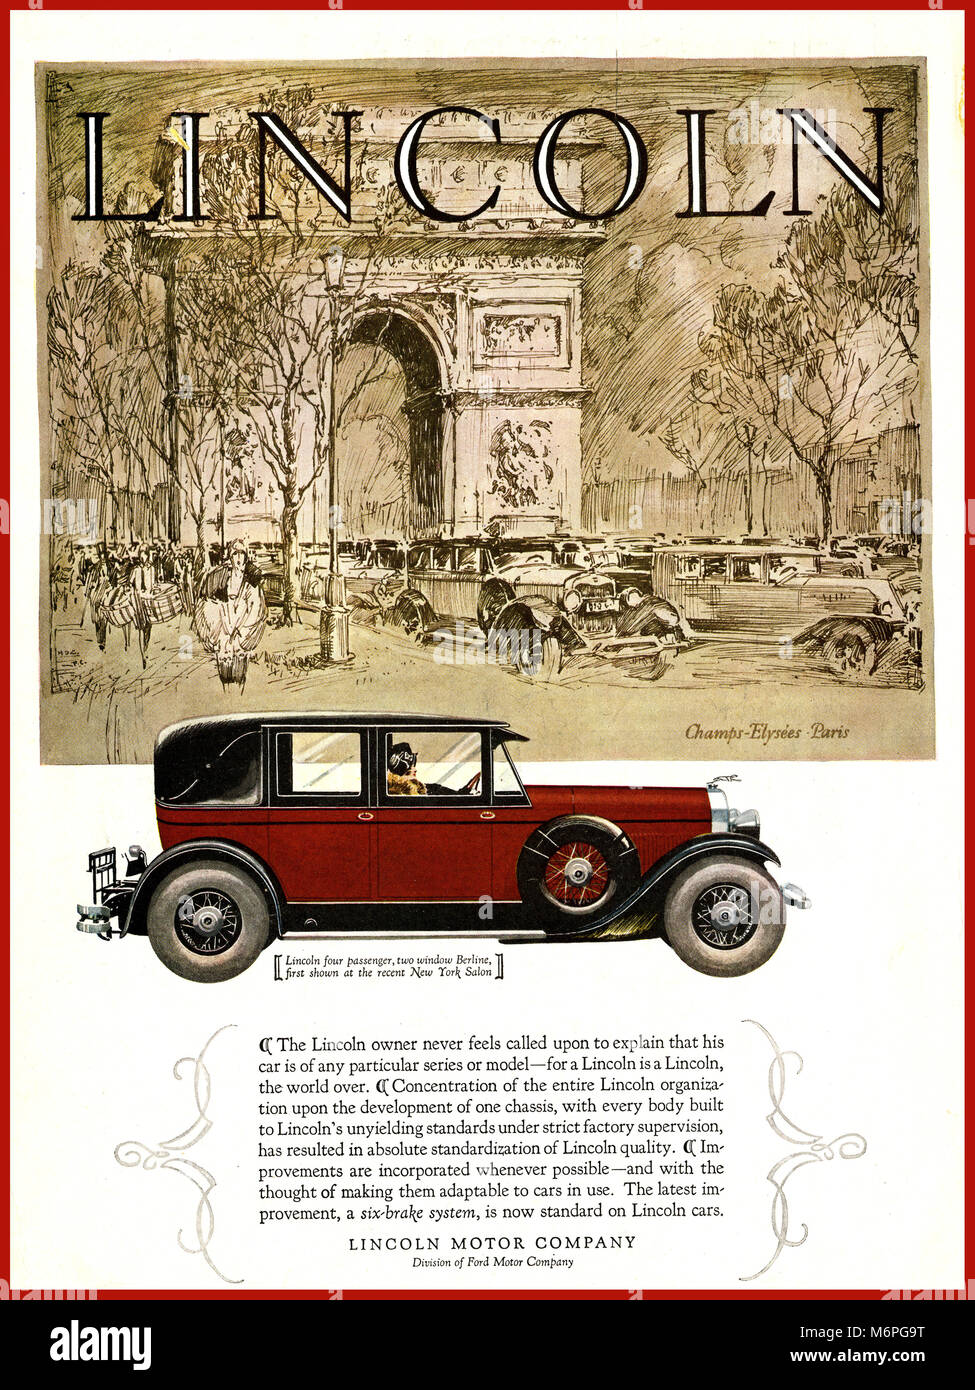 Vintage 1927 LINCOLN American Car Automobile advertisement with Arc de Triomphe Paris France stylised behind. Page - Stock Image